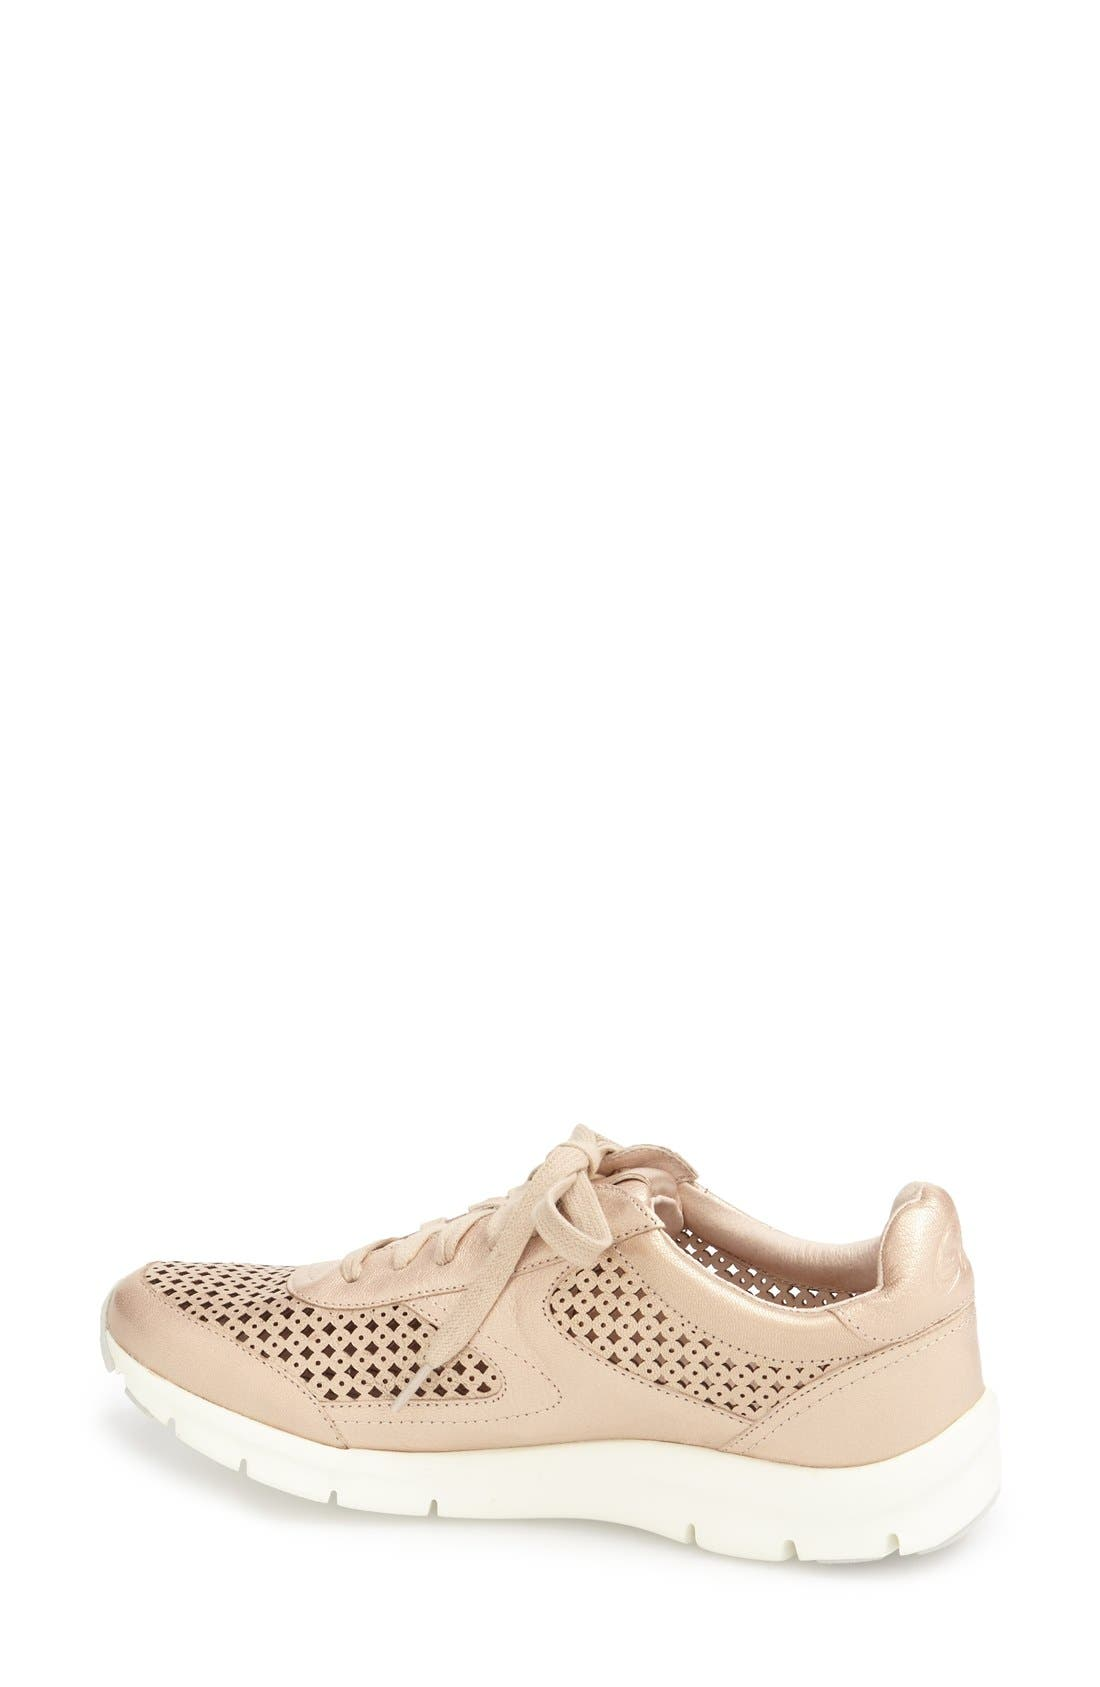 'Tammi' Perforated Leather Sneaker,                             Alternate thumbnail 2, color,                             Sand Leather